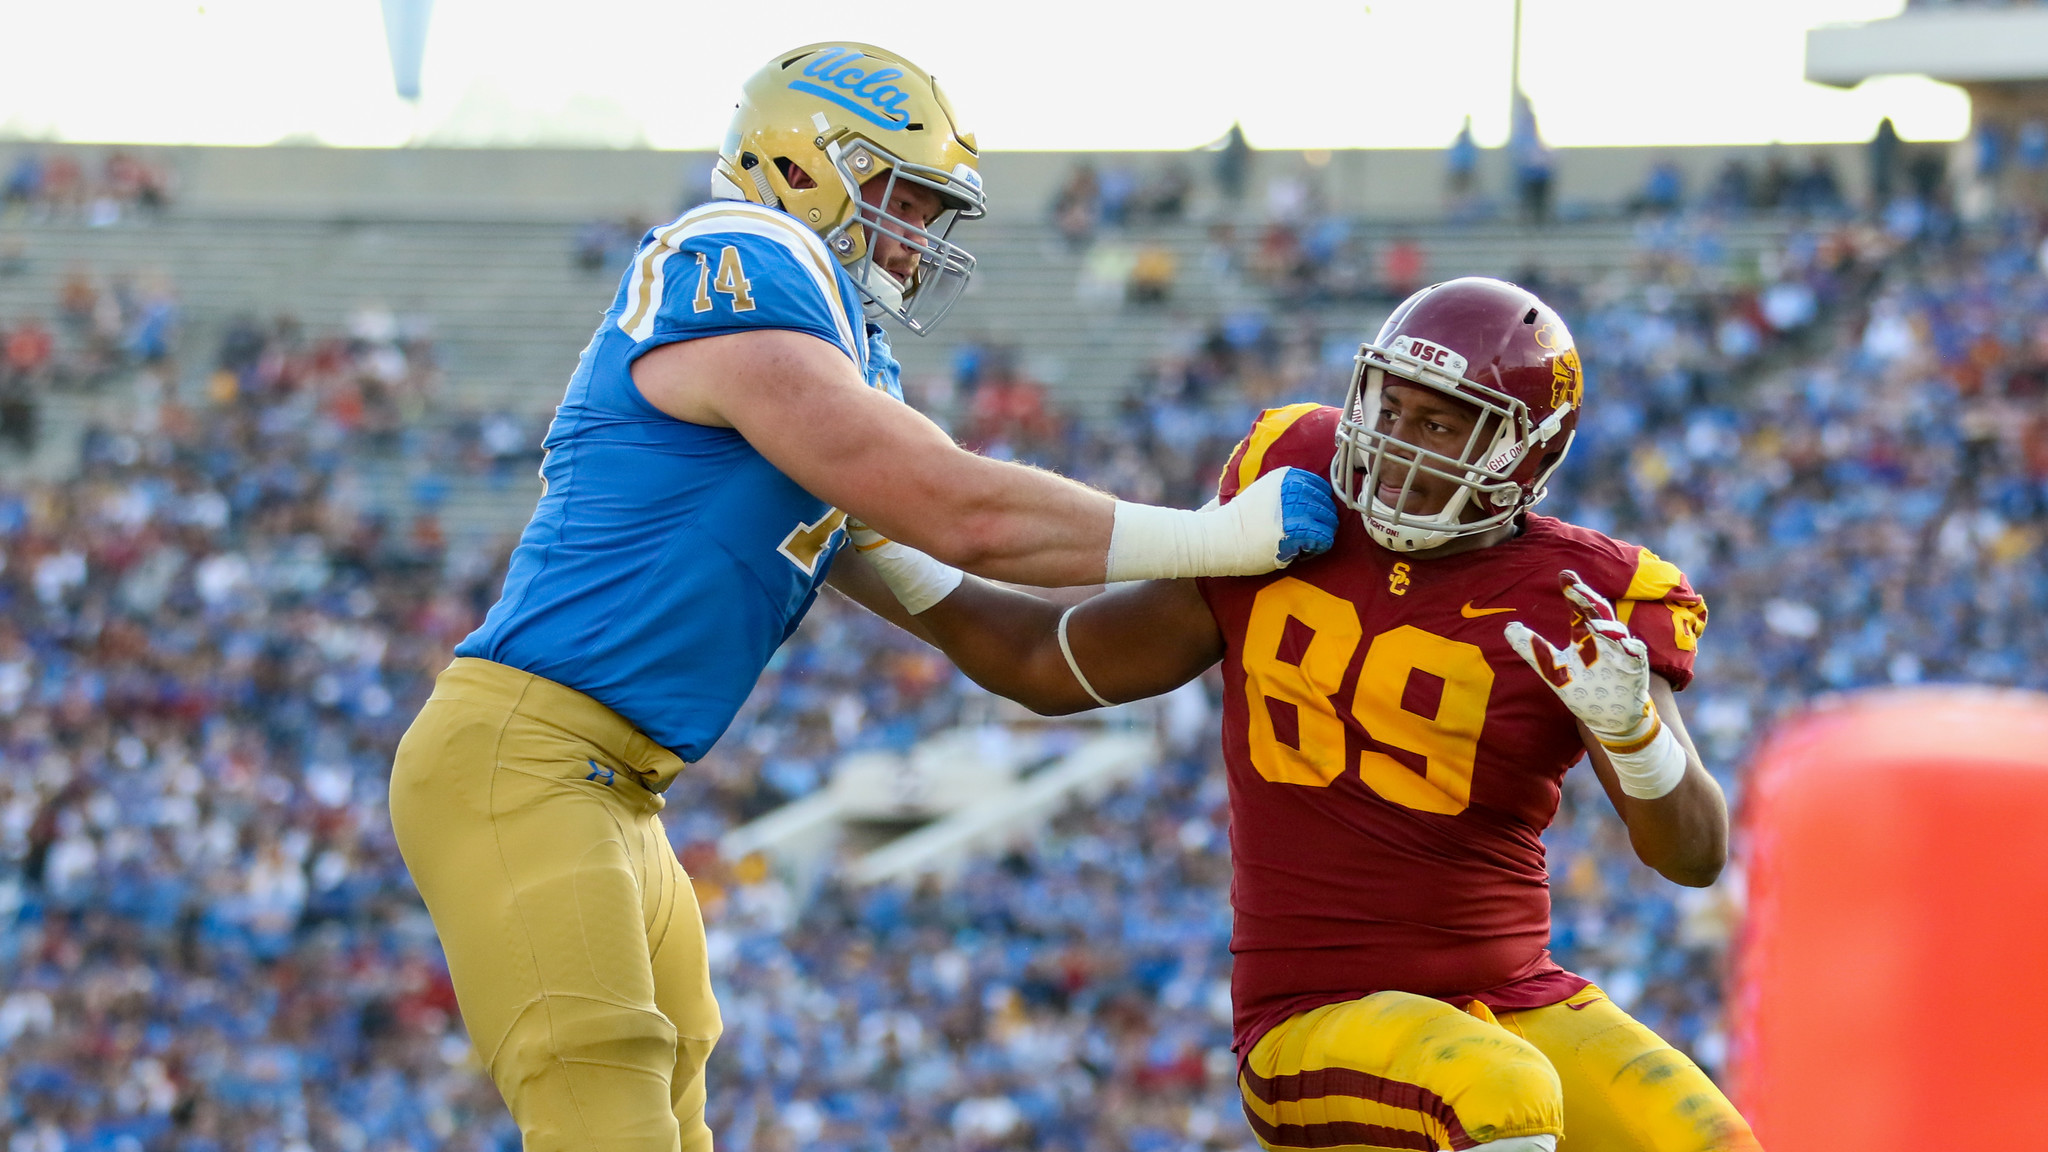 UCLA offensive tackle Justin Murphy granted a sixth year of eligibility